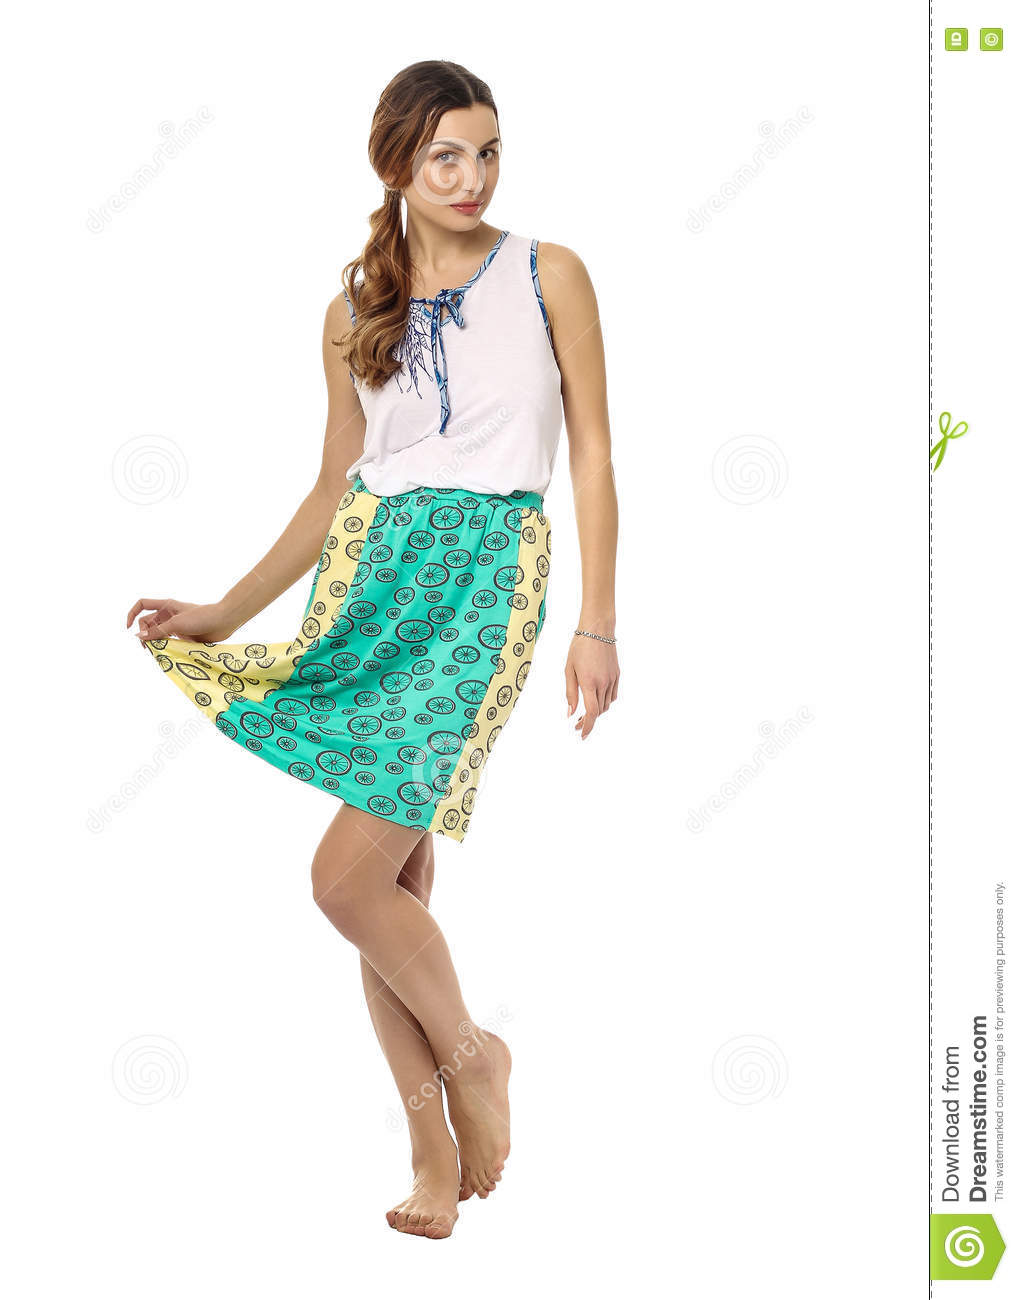 31487df3d3c Young Teen In Dress And High Heels Stock Image - Image of lovely ...